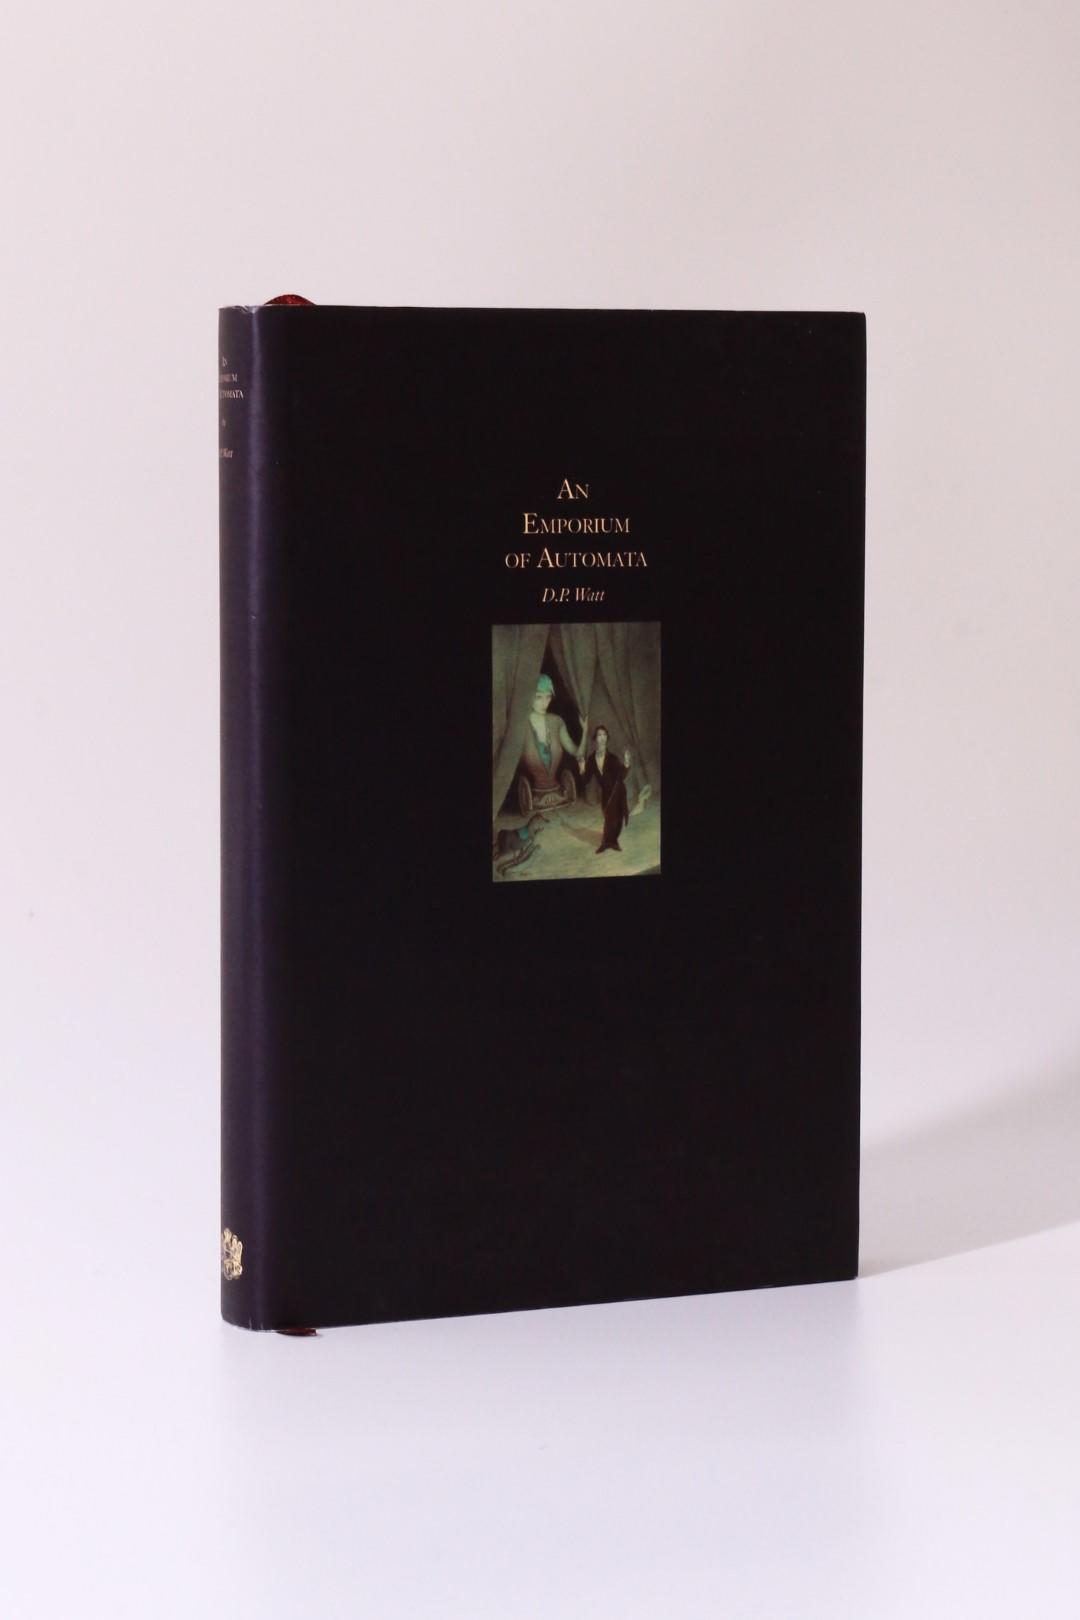 D.P. Watt - An Emporium of Automata - Ex-Occidente, 2010, Limited Edition.